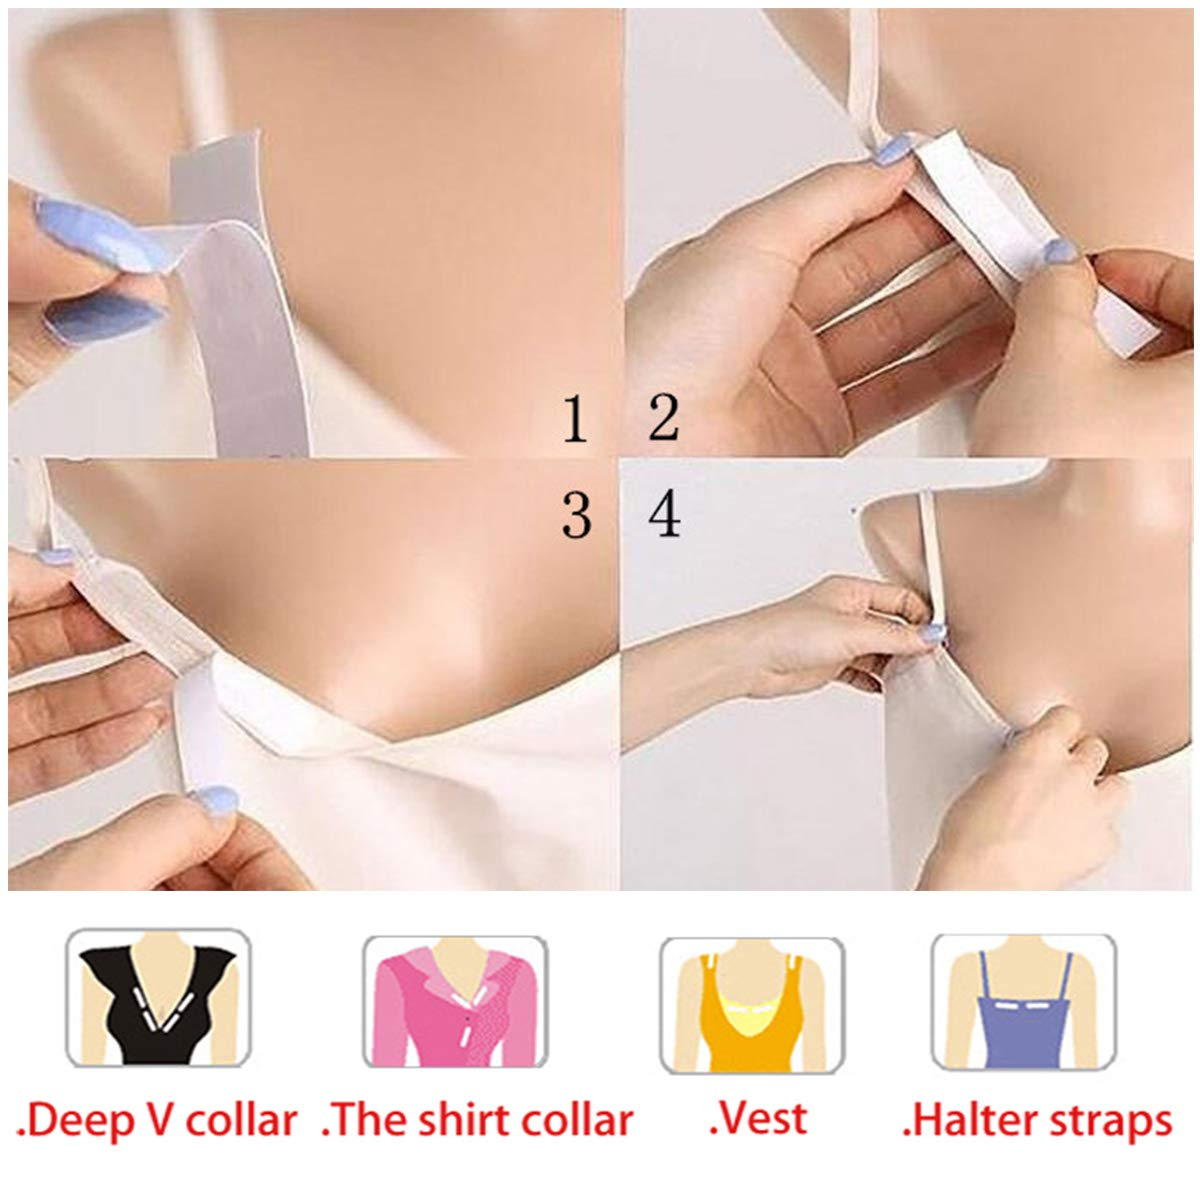 6 Rolls Double Sided Self Adhesive Clothes Tape Fashion Body Tape for Skin//Breast 5 Meters with 6 Tapes and a Dispenser for Dress Secret Bra Tape,30 Meters Body Tape